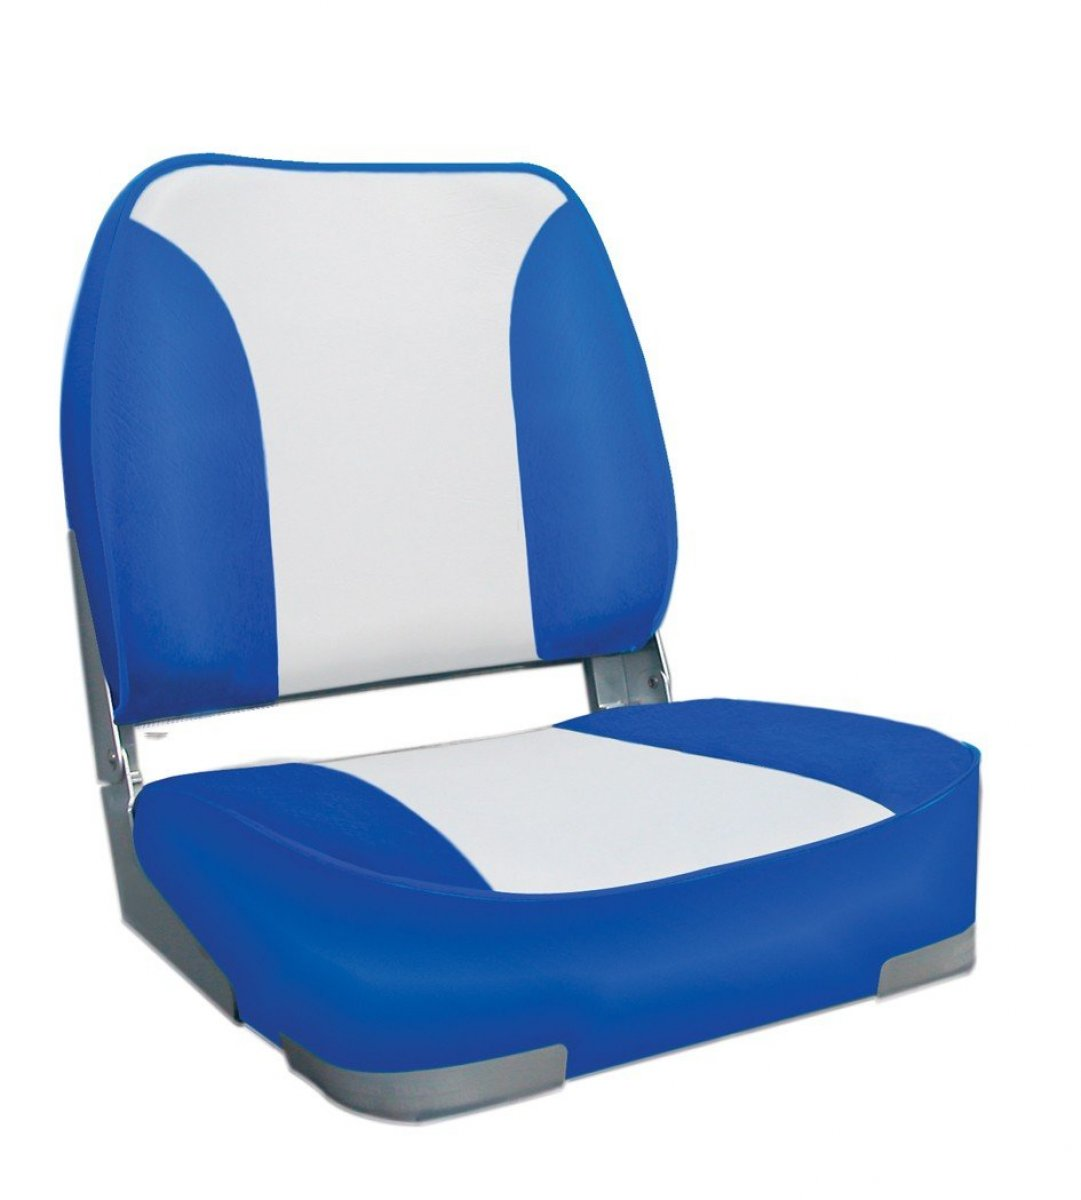 DELUXE FOLDING CUSHIONED SEATS - ONLY $ 79.00